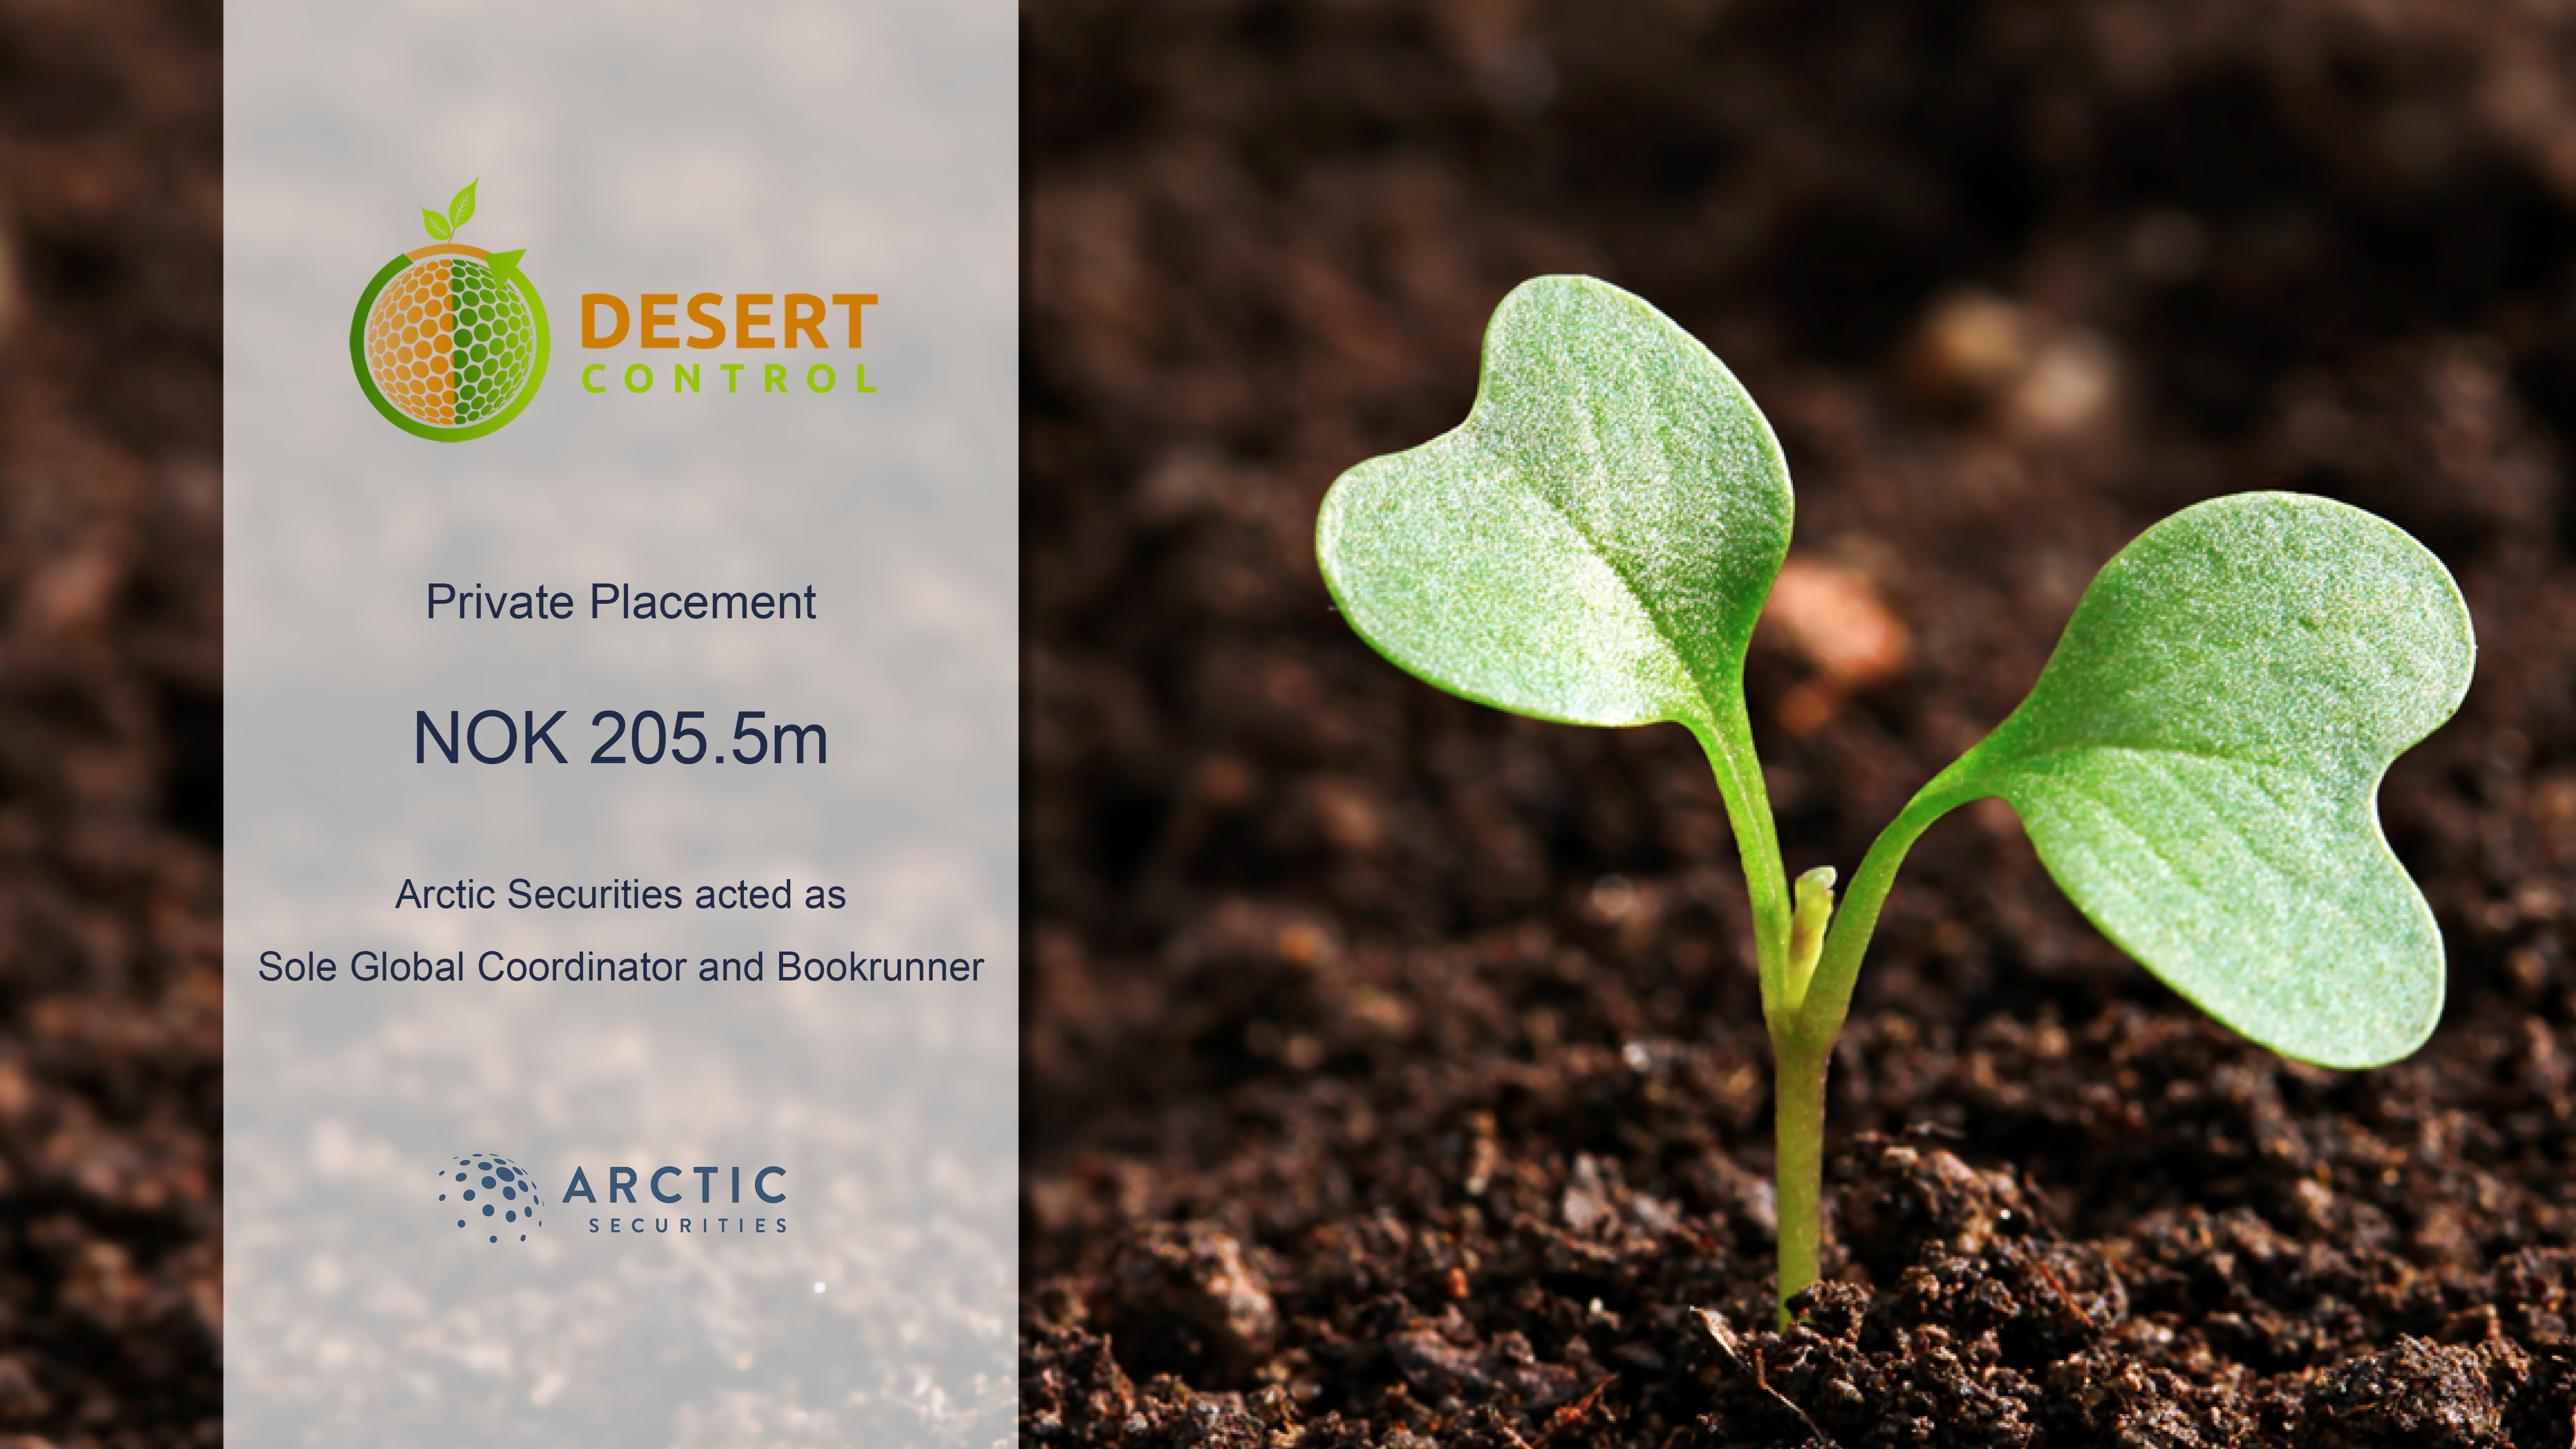 Private Placement of NOK 205.5m in Desert Control AS